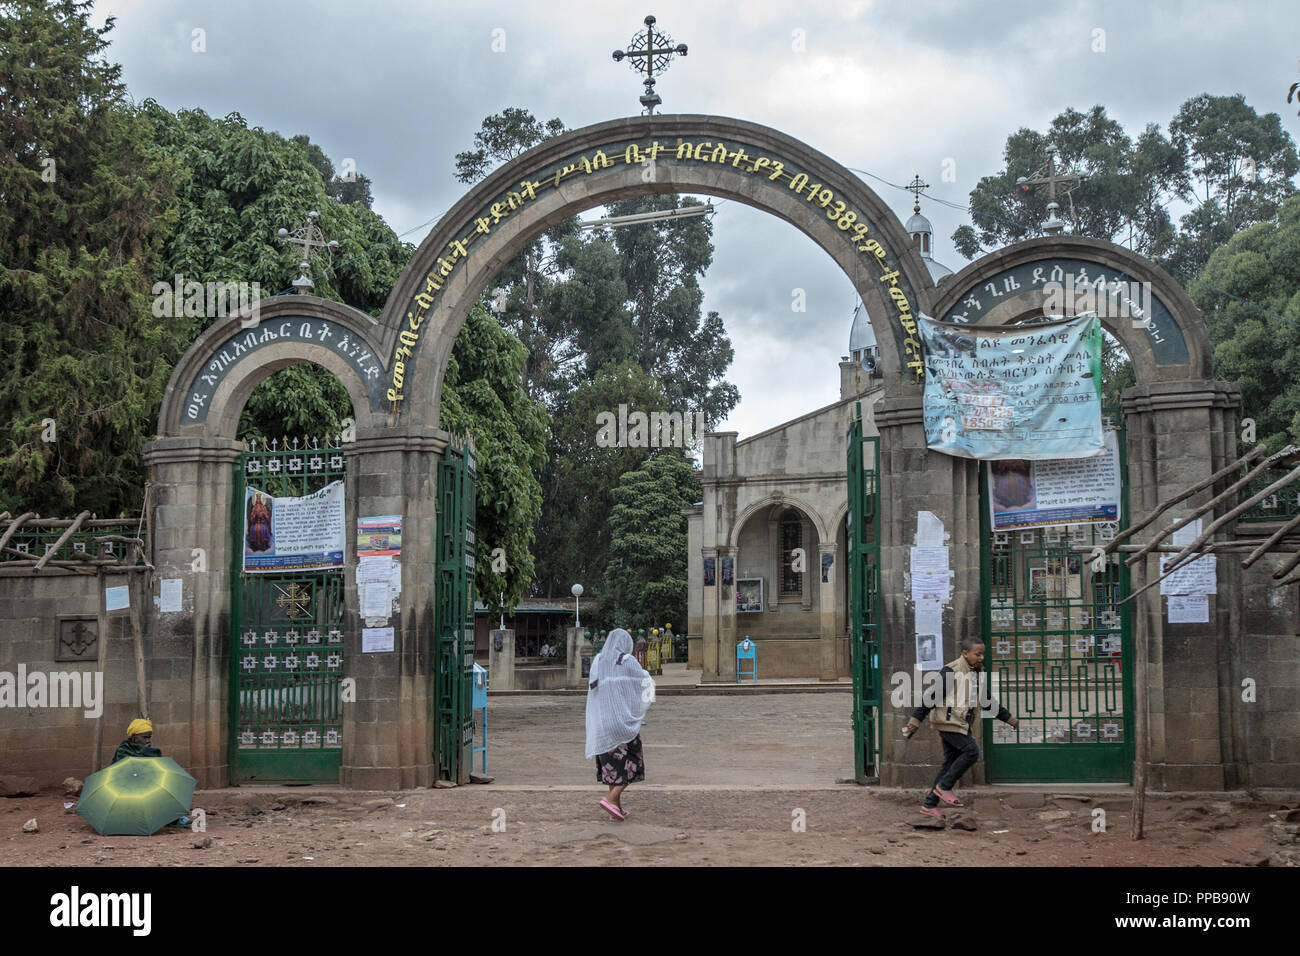 Ethiopian Orthodox Tewahedo Church Entrance, Addid Ababa, Ethiopia - Stock Image